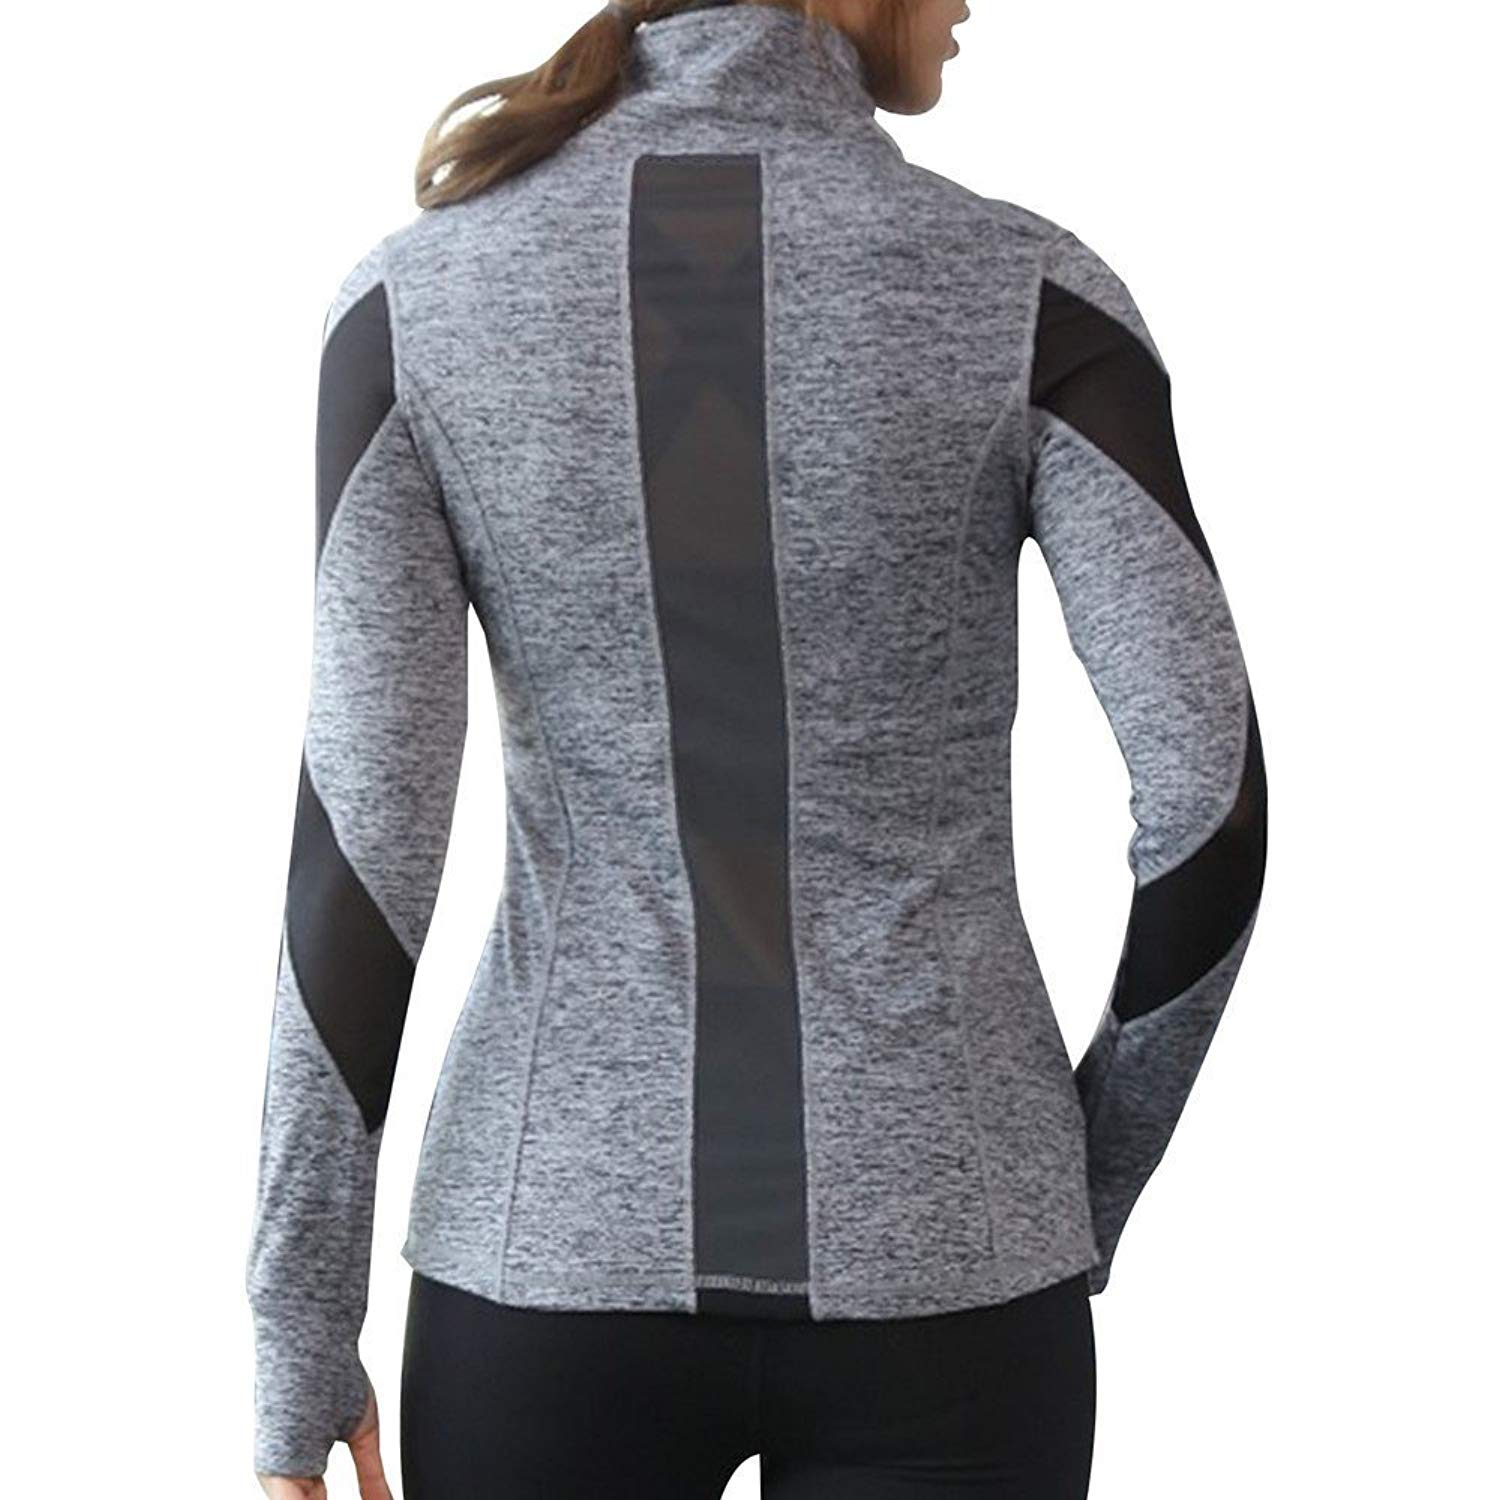 d3ec41e49f9 Get Quotations · Women Slim Fit Athletic Running Yoga Fleece Lined Full-Zip  Hand Pockets Turtleneck Workout Track